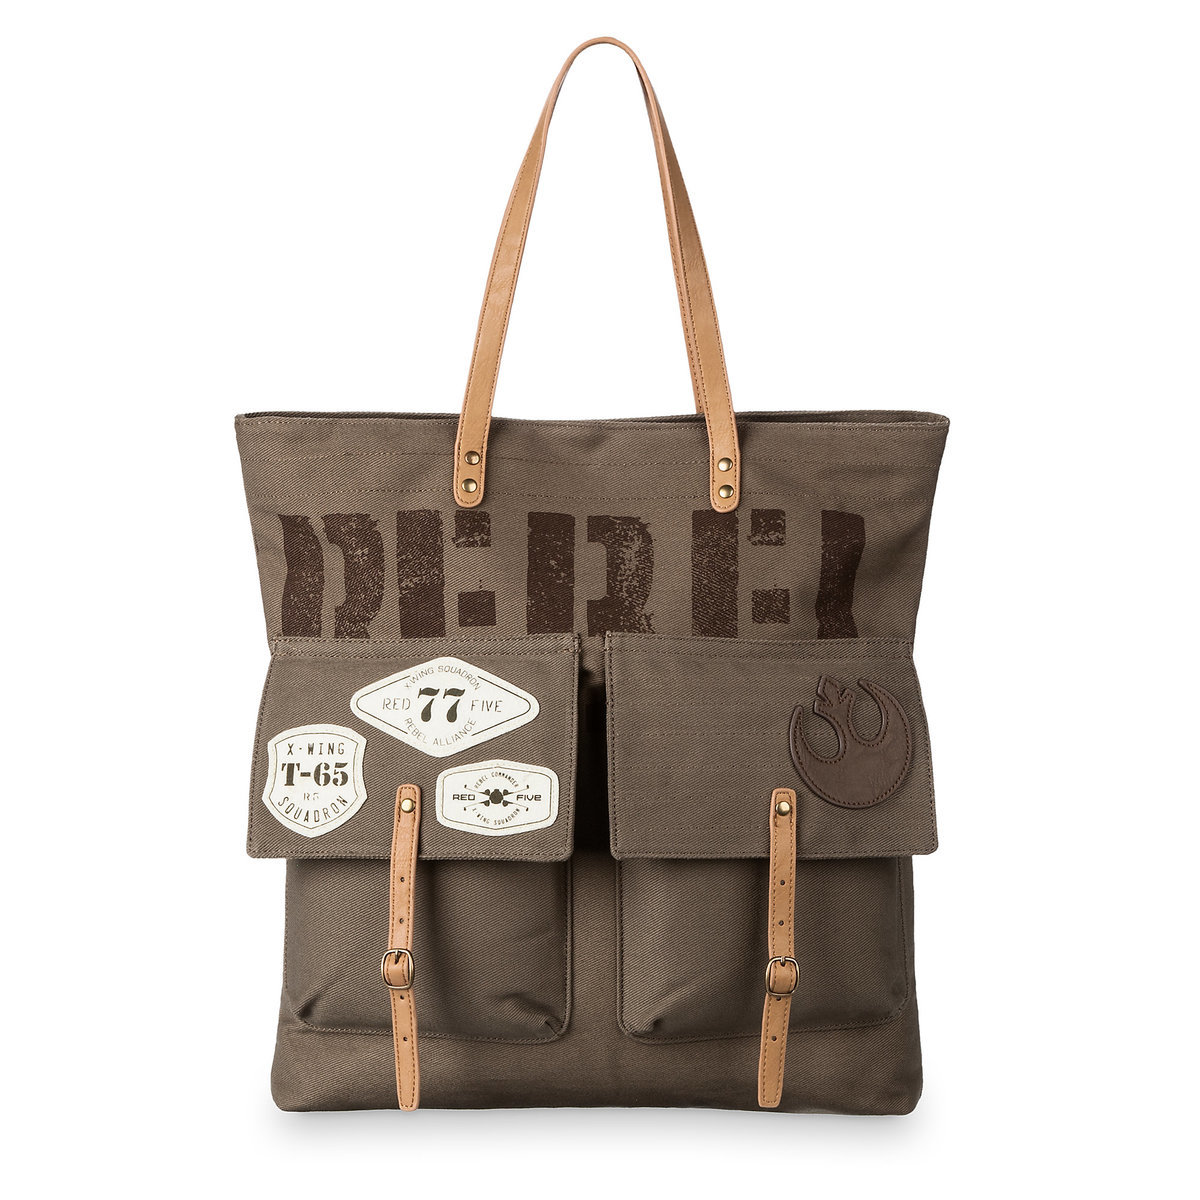 b4b6bb3c1b Product Image of Star Wars: Rebel Resistance Tote Bag by Loungefly # 1